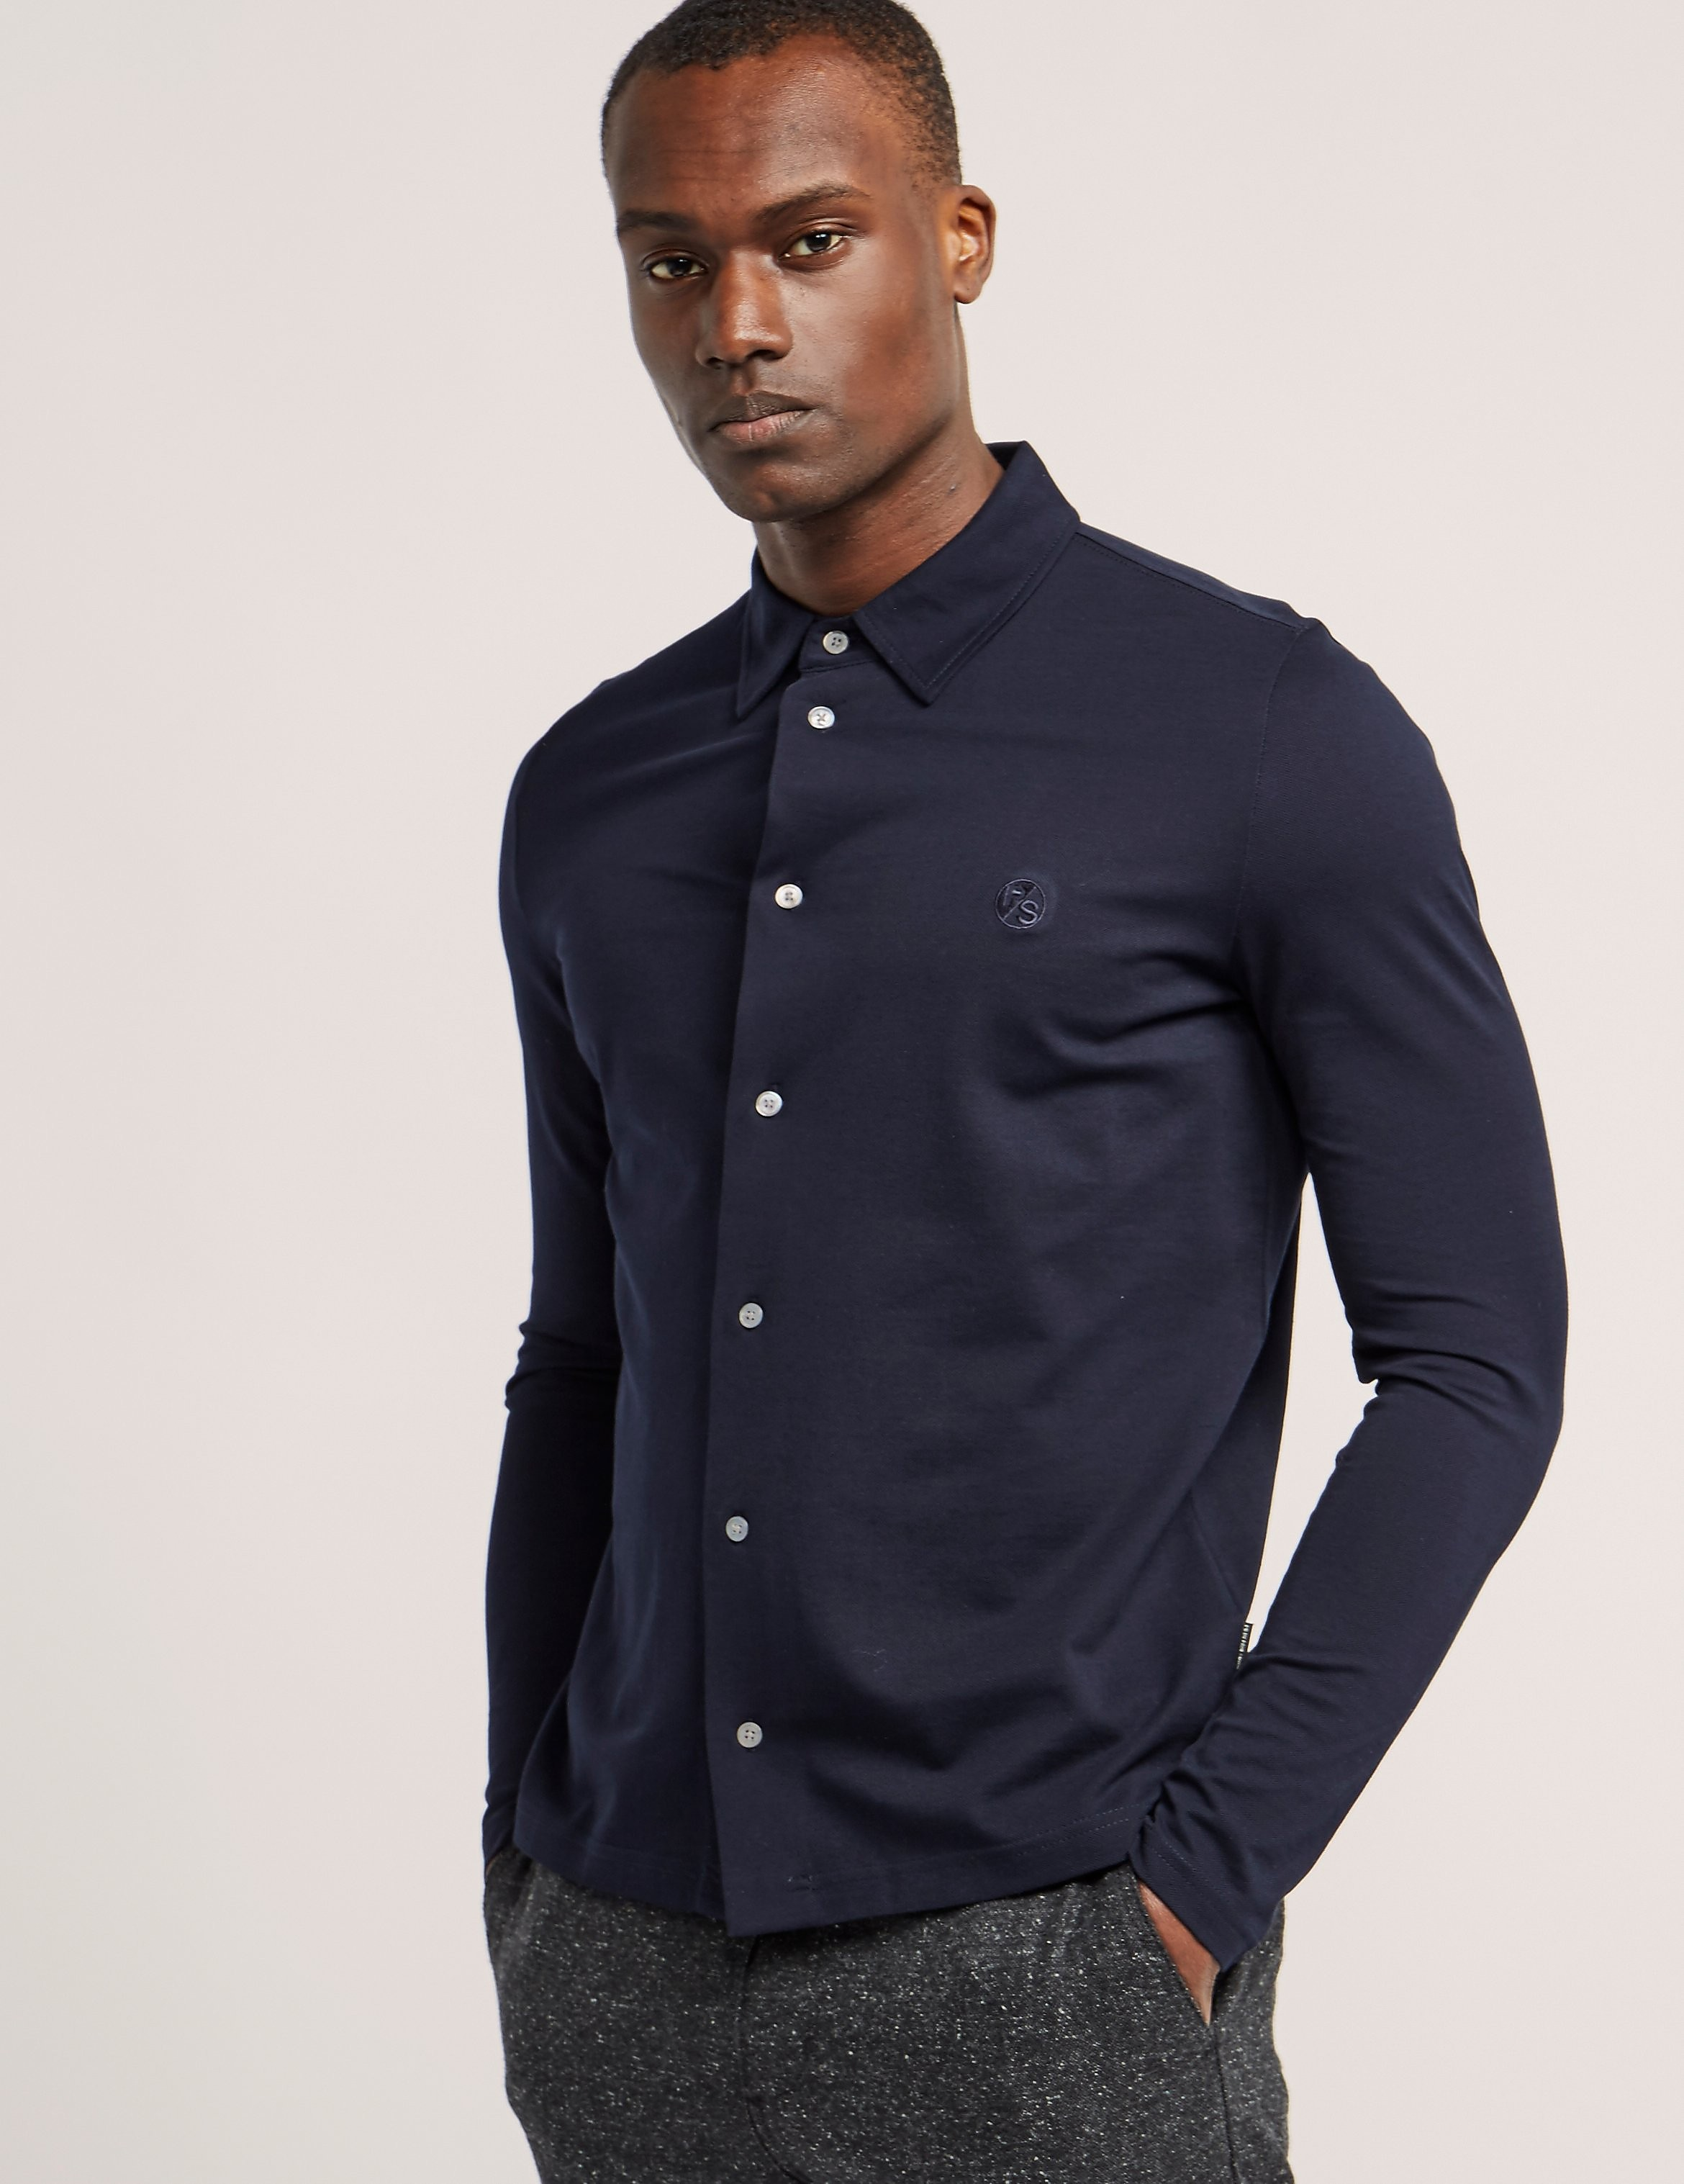 Paul Smith Pique Long Sleeve Shirt